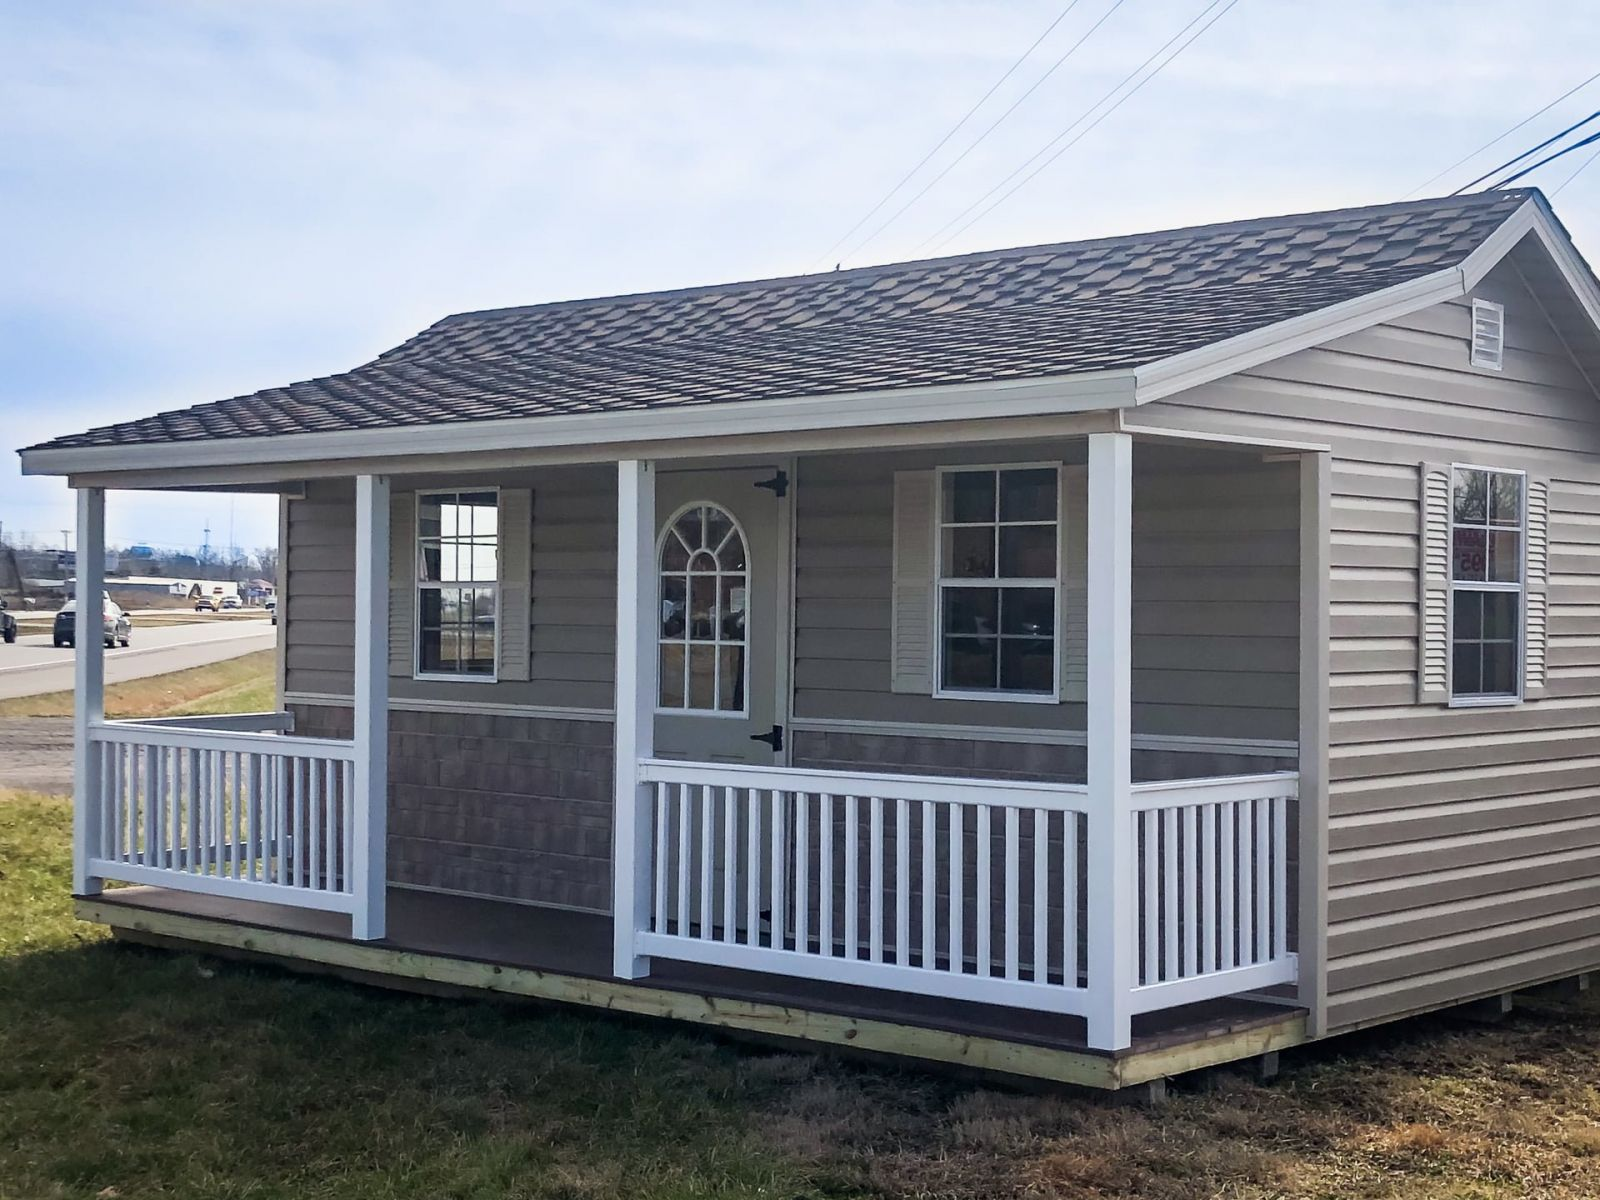 A prefab cabin shed for sale near Russellville, KY